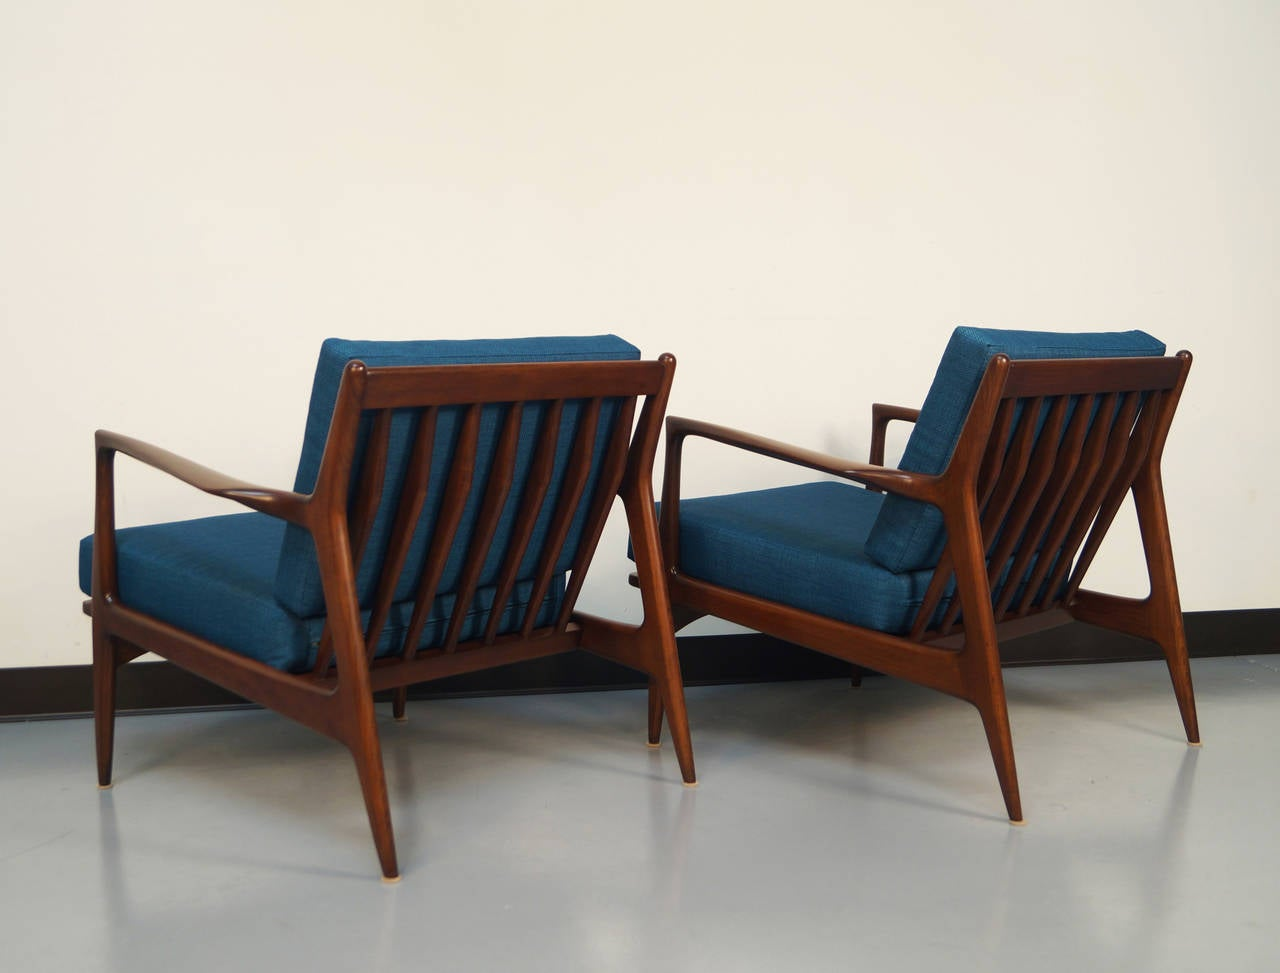 This sculptural pair of lounge chairs by ib kofod larsen is no longer - Danish Modern Lounge Chairs By Ib Kofod Larsen 2